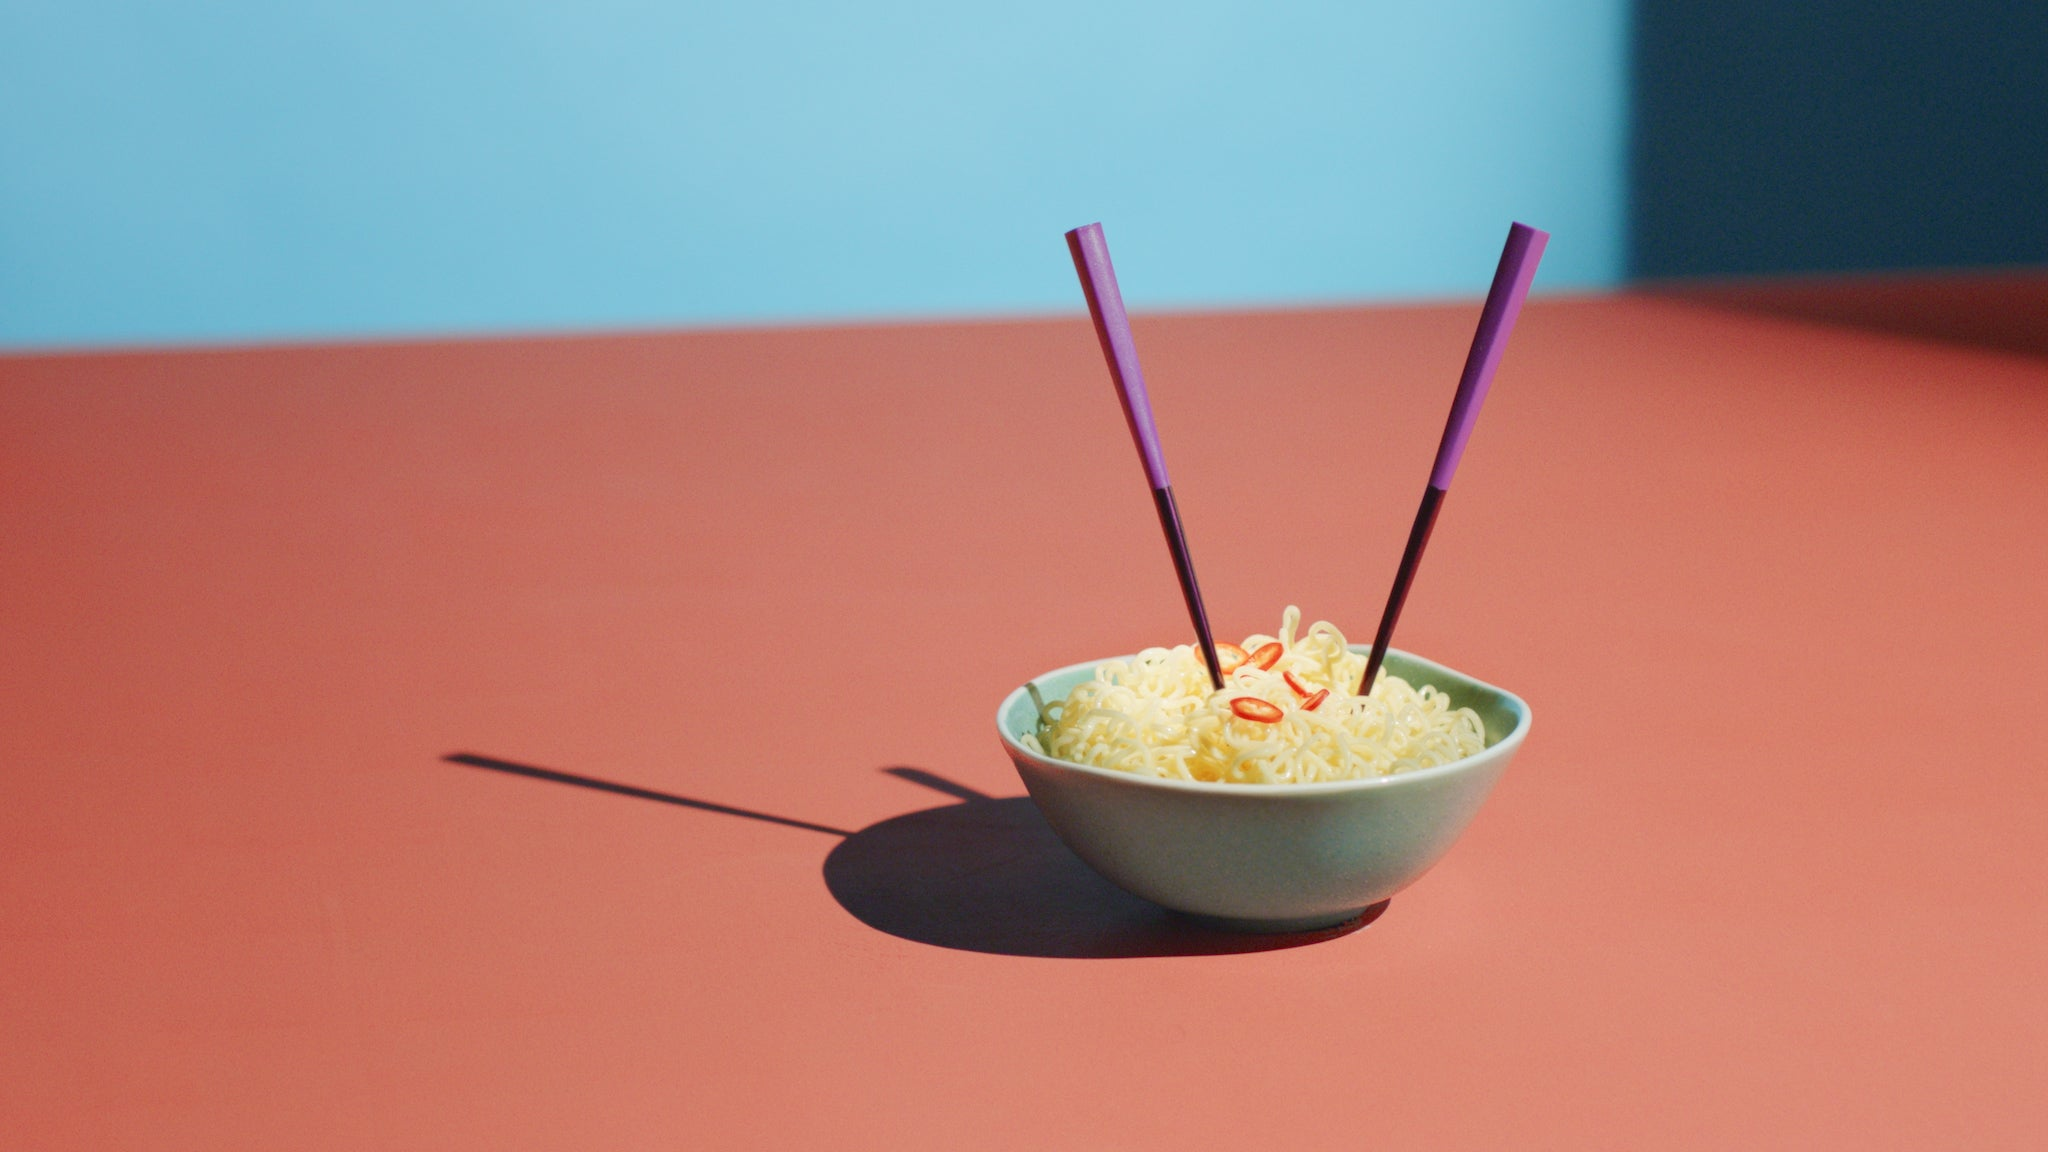 otherware pebble chopsticks noodles campaign shot